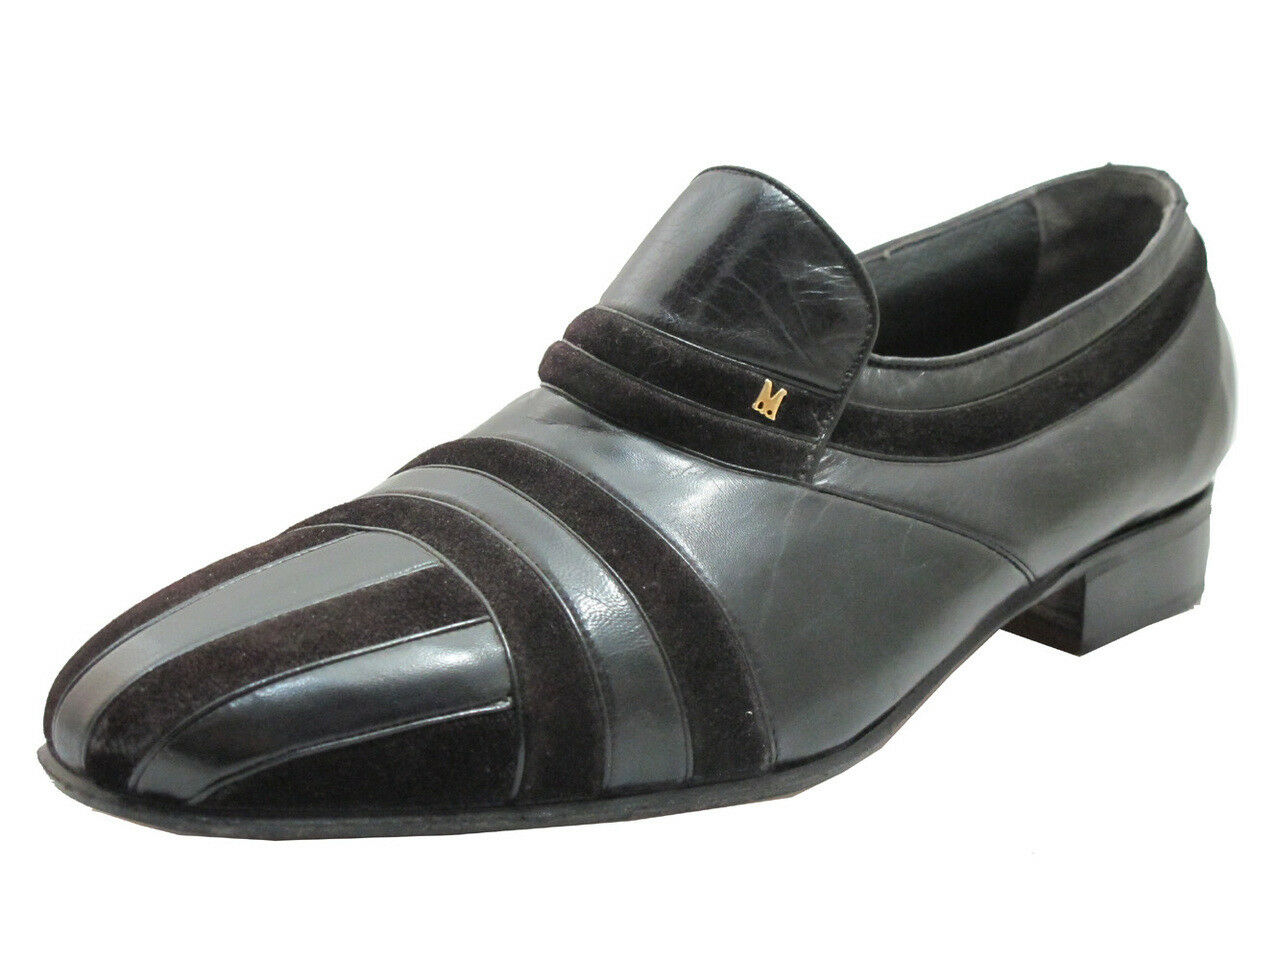 Via Veneto Men's 9774 Italian leather Pin-stripe Slip on scarpe